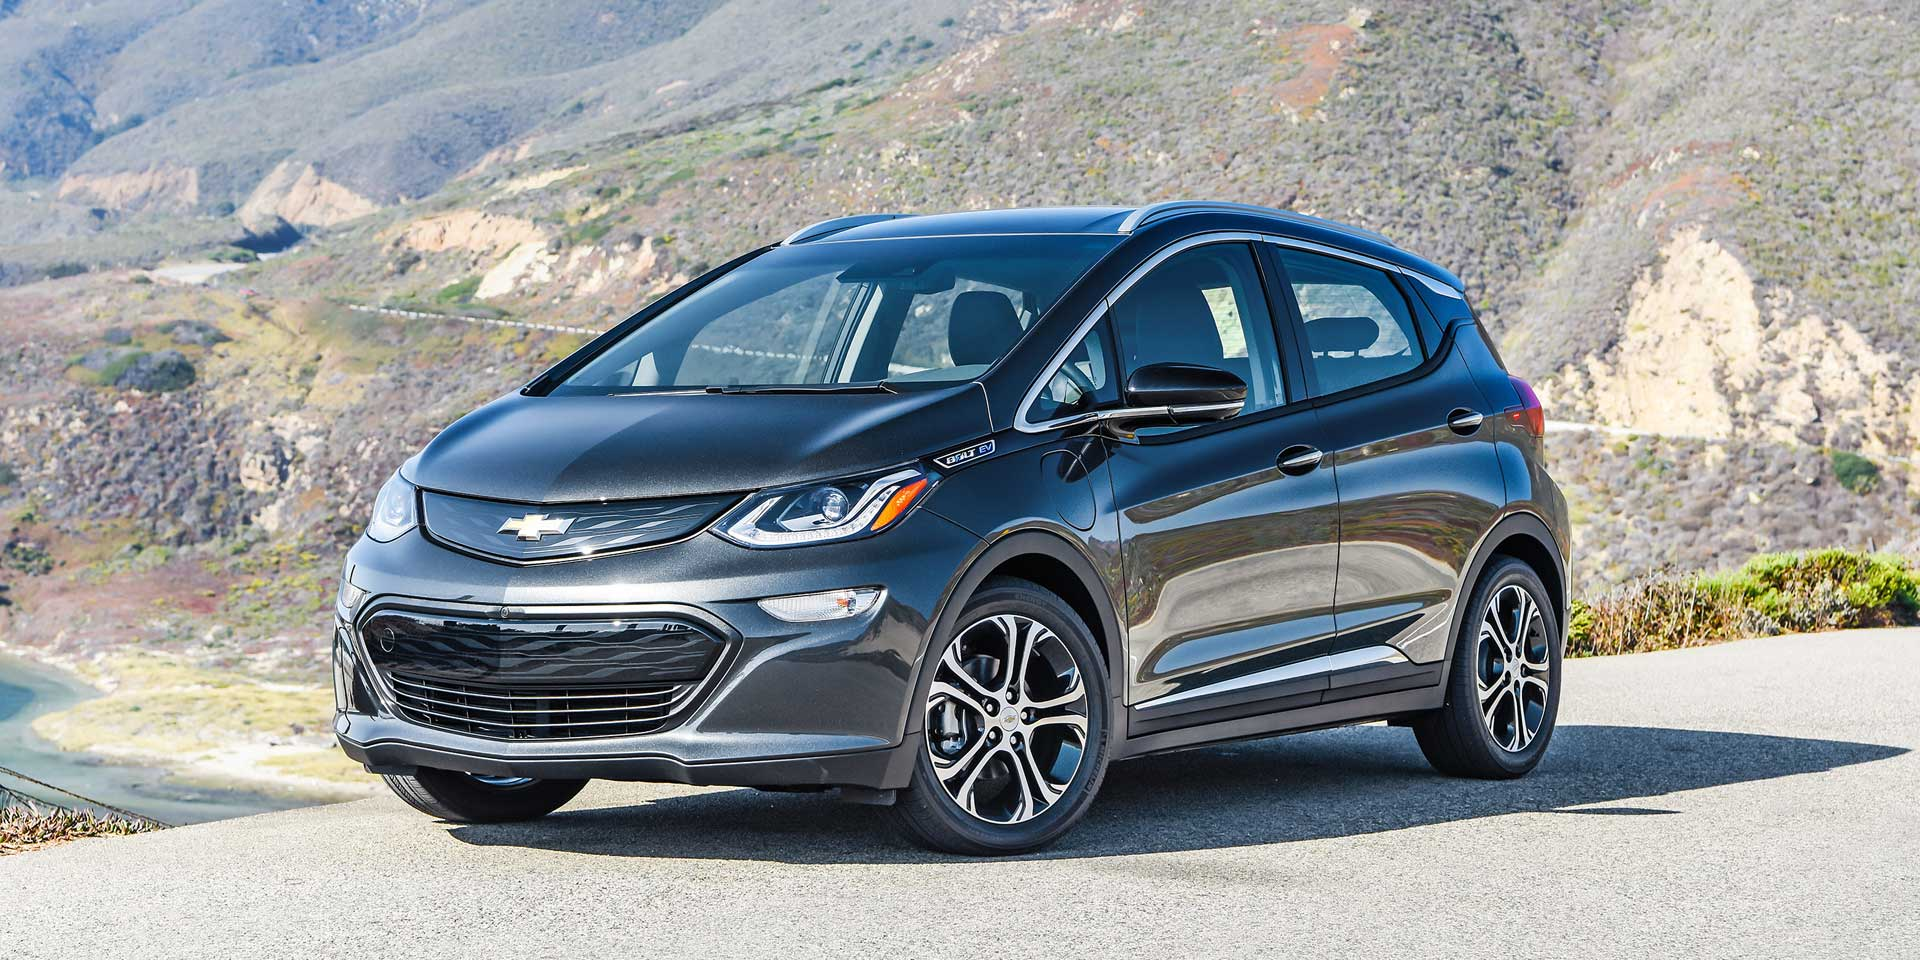 2018 chevrolet bolt ev vehicles on display chicago auto show. Black Bedroom Furniture Sets. Home Design Ideas